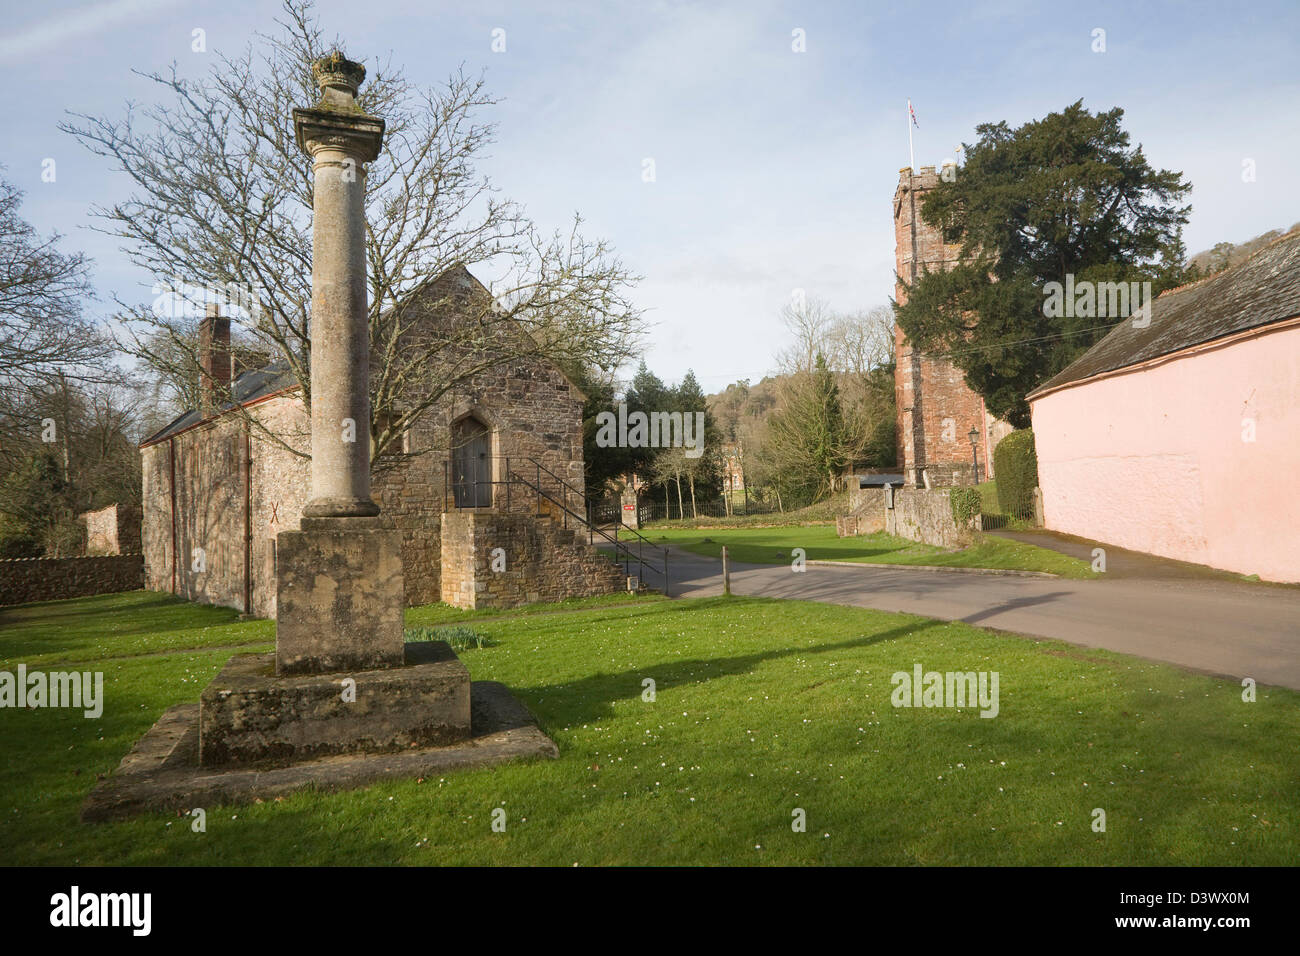 Sixteenth century church house building and war memorial, Crowcombe, Somerset, England - Stock Image